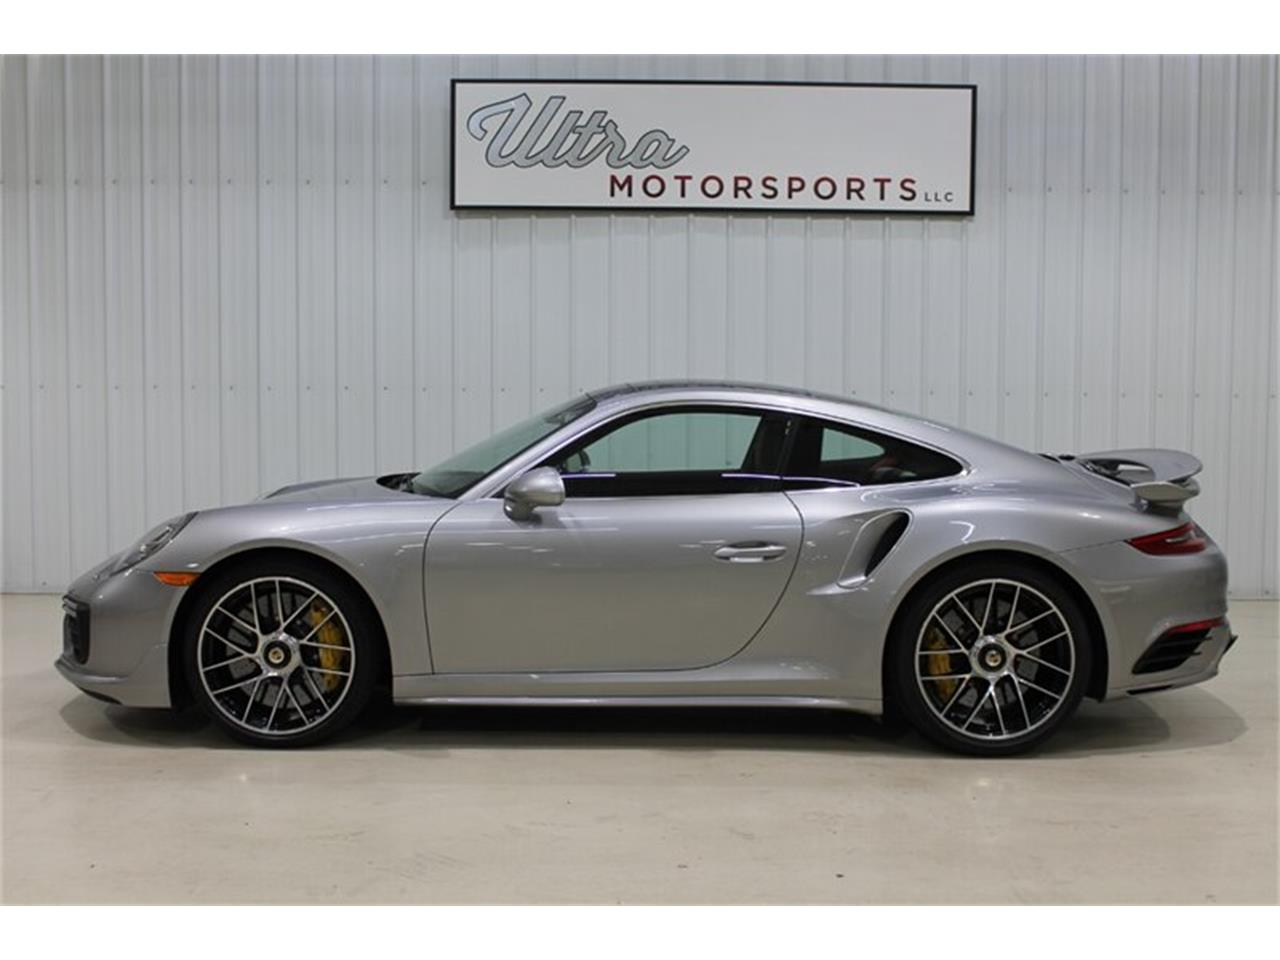 2017 Porsche 911 Turbo S (CC-1354554) for sale in Fort Wayne, Indiana